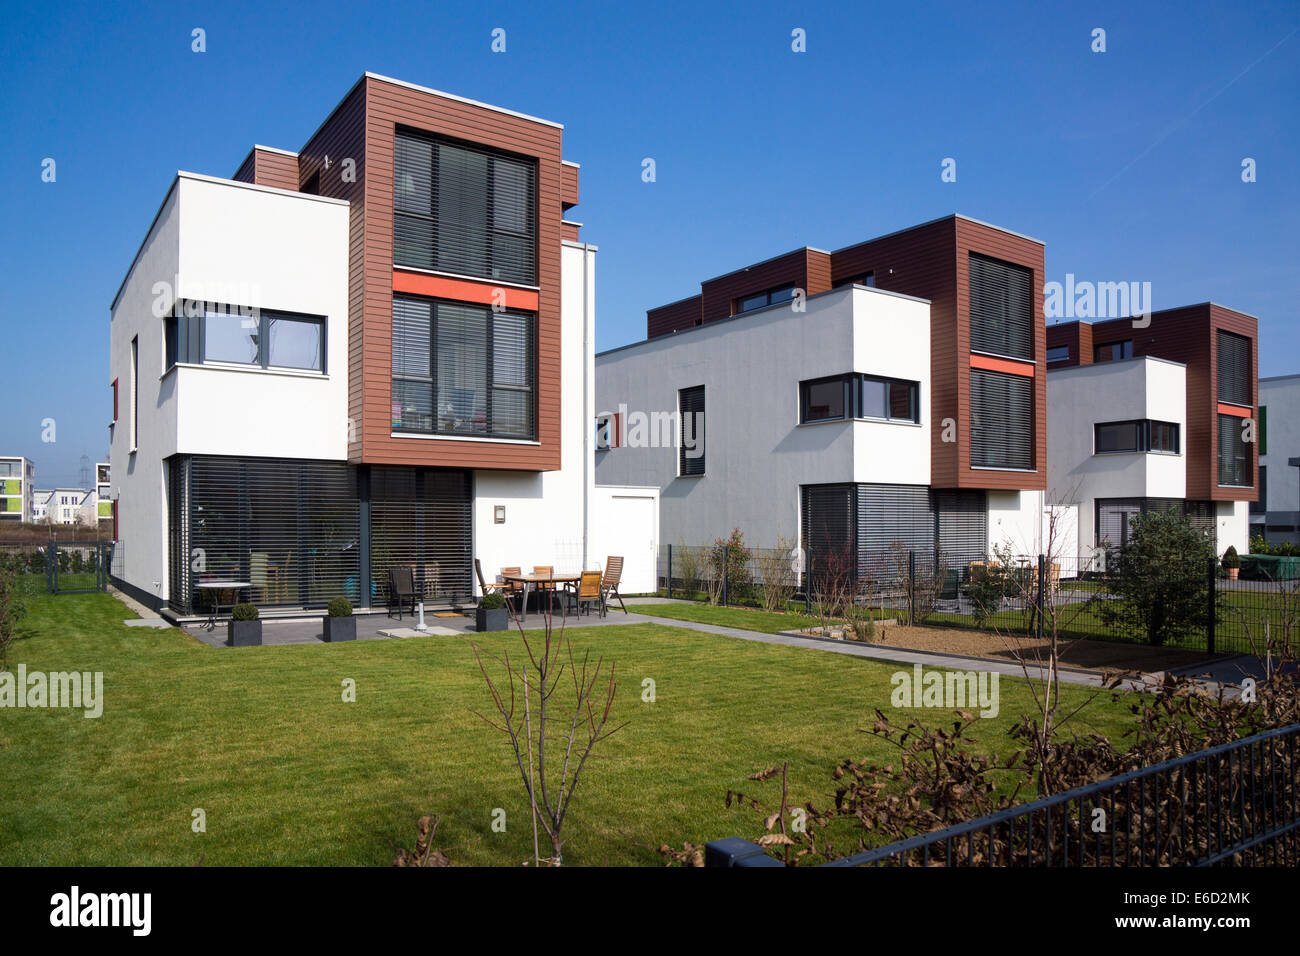 Family house modern architecture in the bauhaus style Fashion for home frankfurt